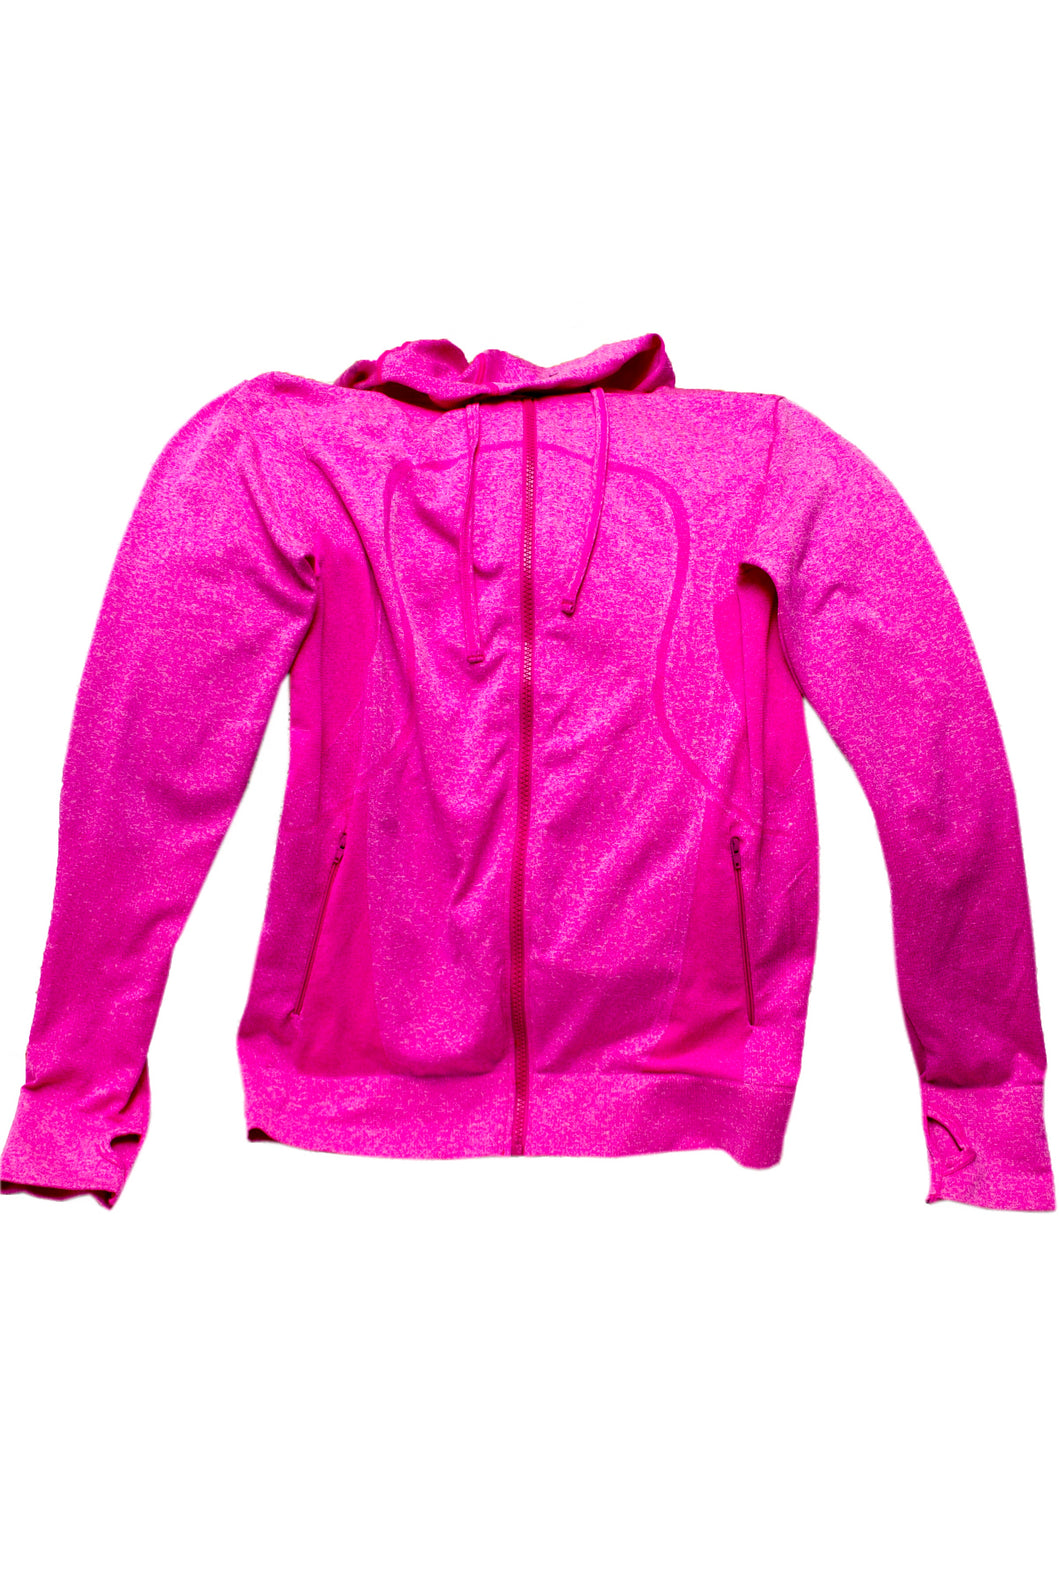 Ladies Pink Active Wear Sweater